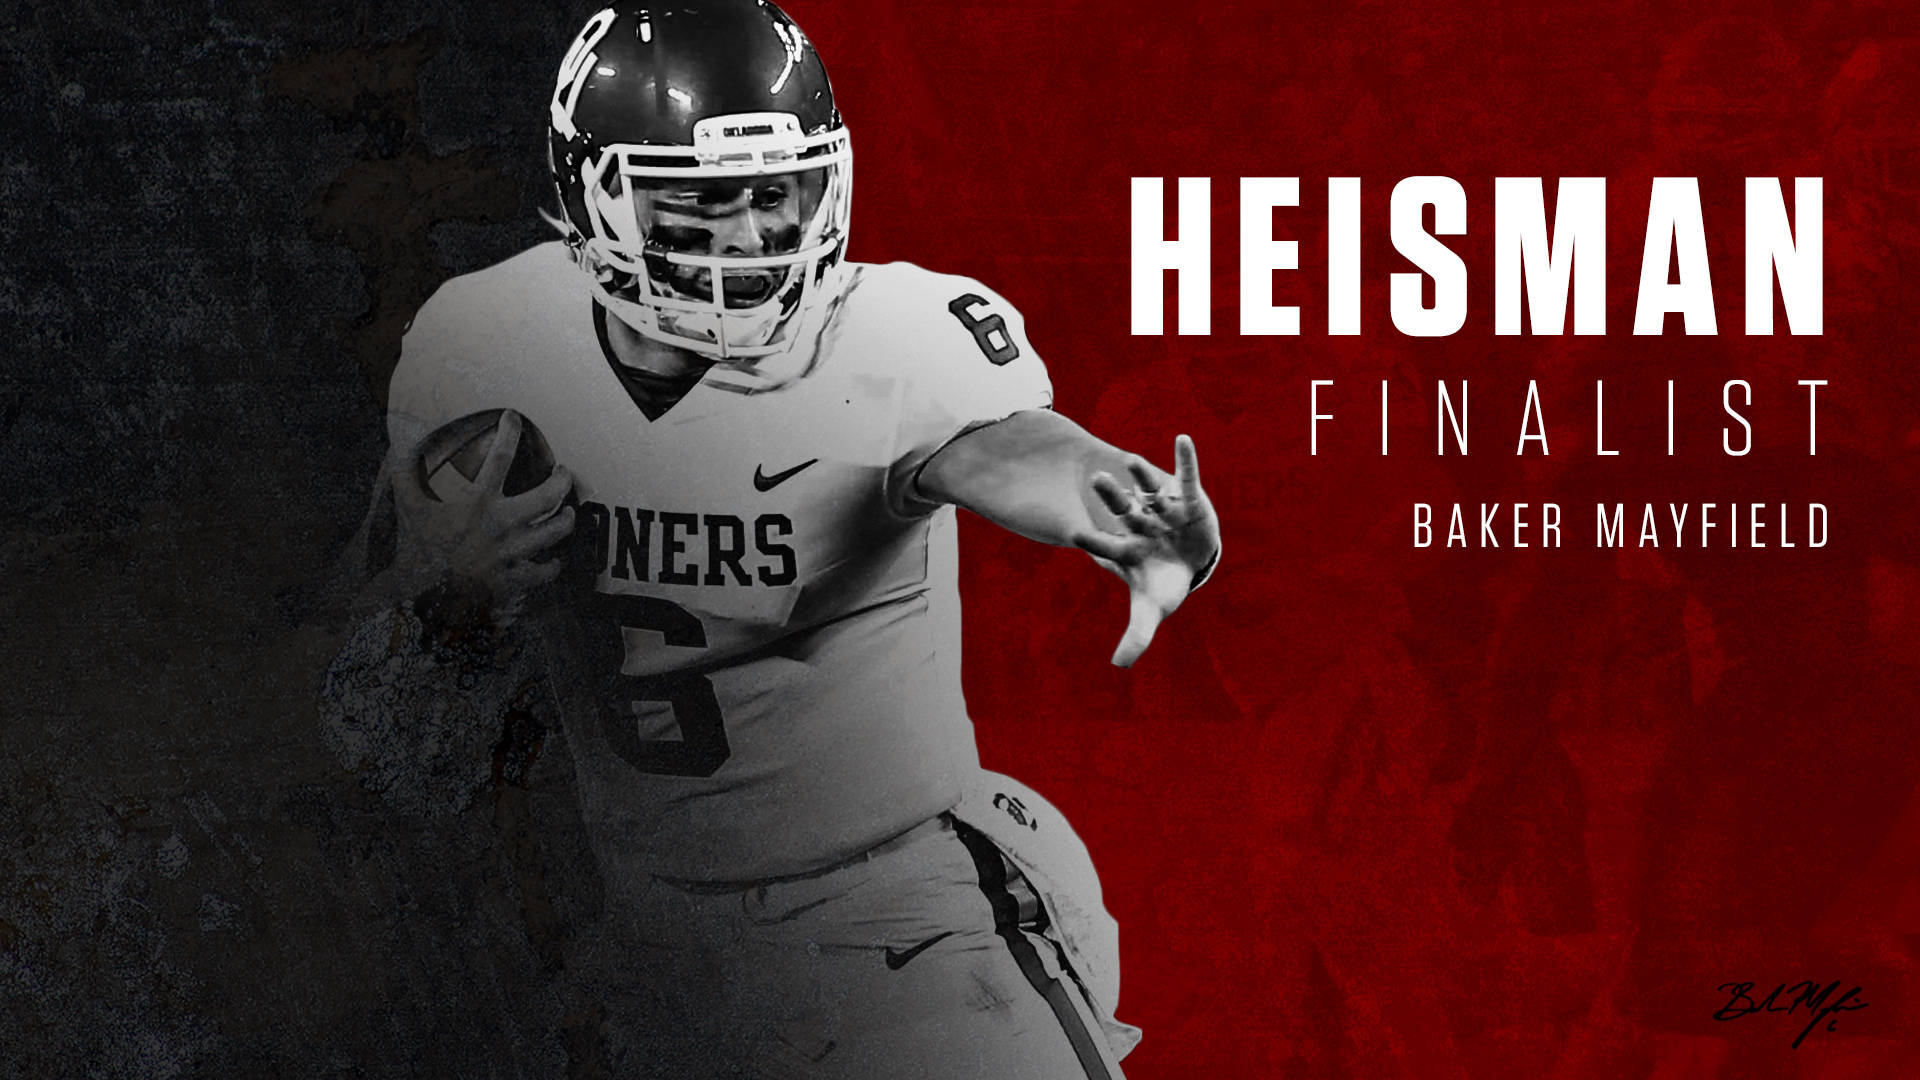 Mayfield a Heisman Finalist for 2nd Time - University of